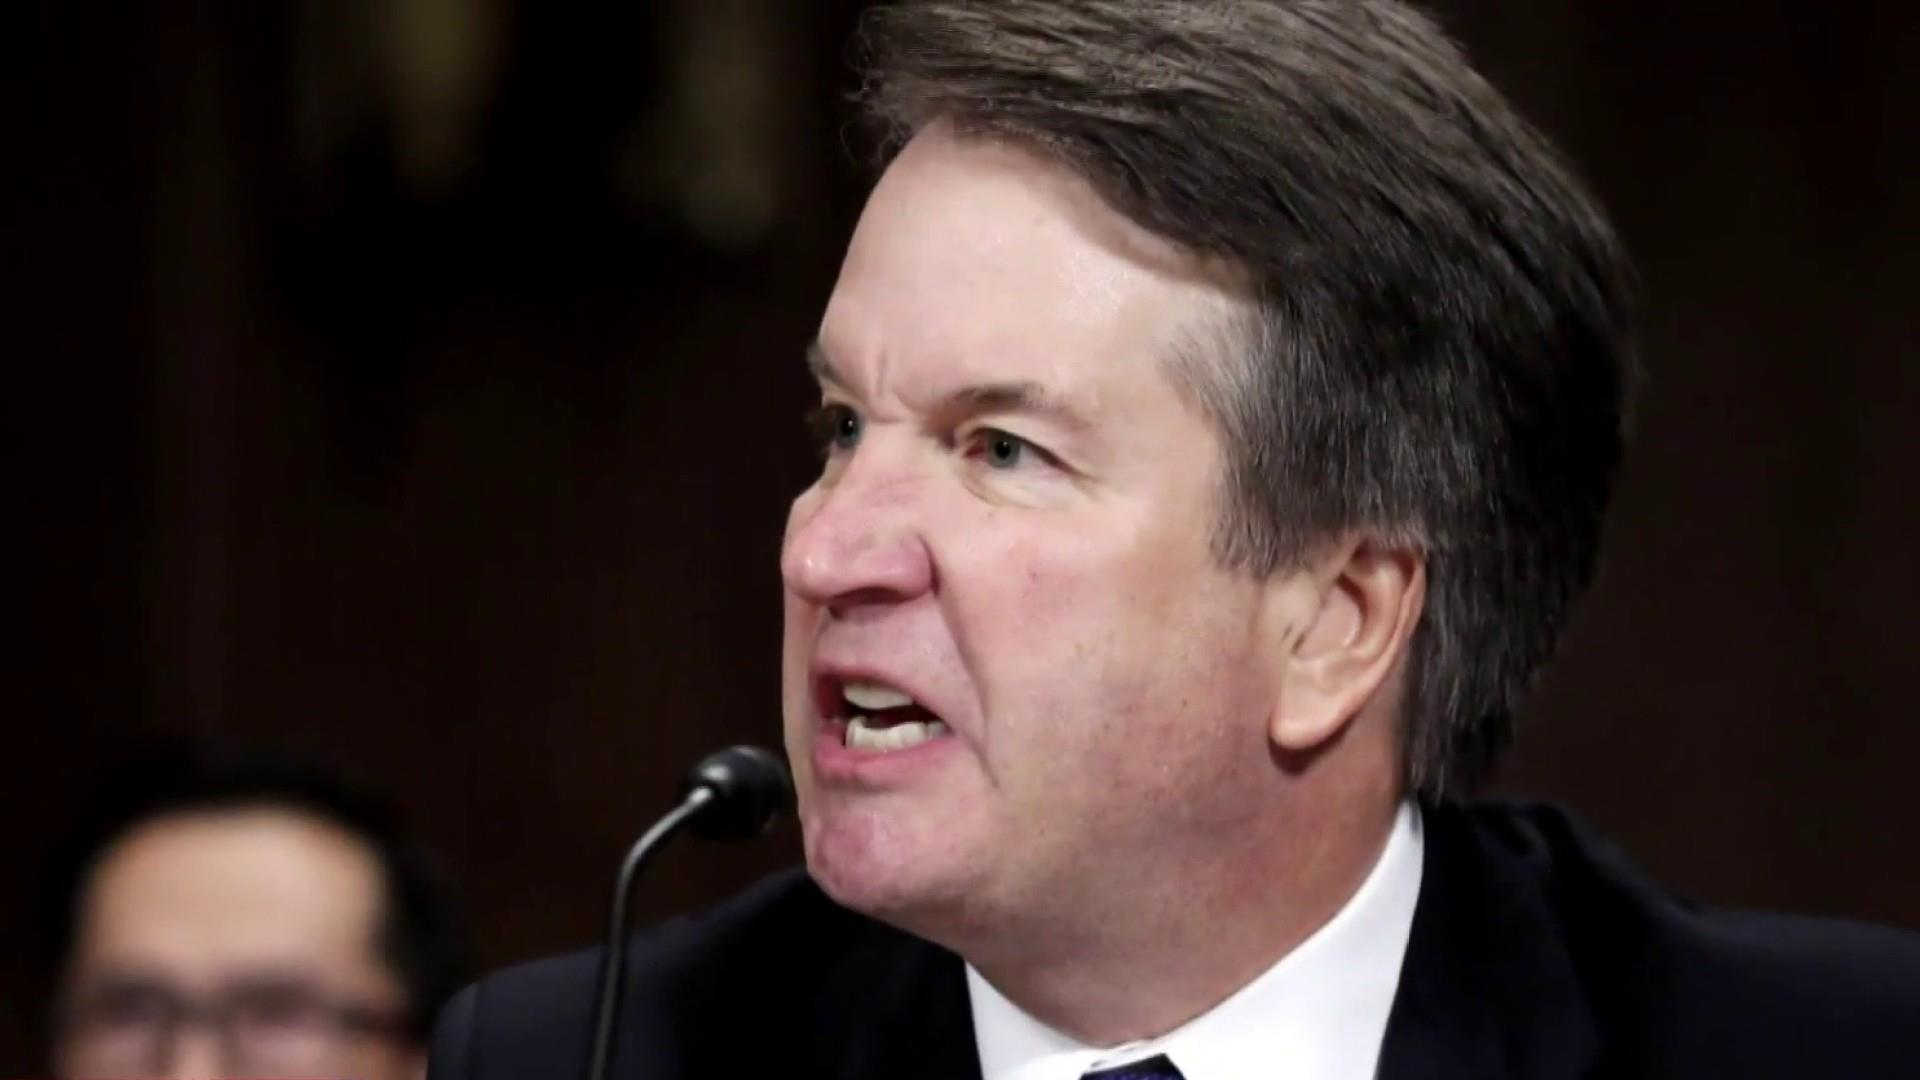 Dems suggest background checks on Kavanaugh show inappropriate behavior